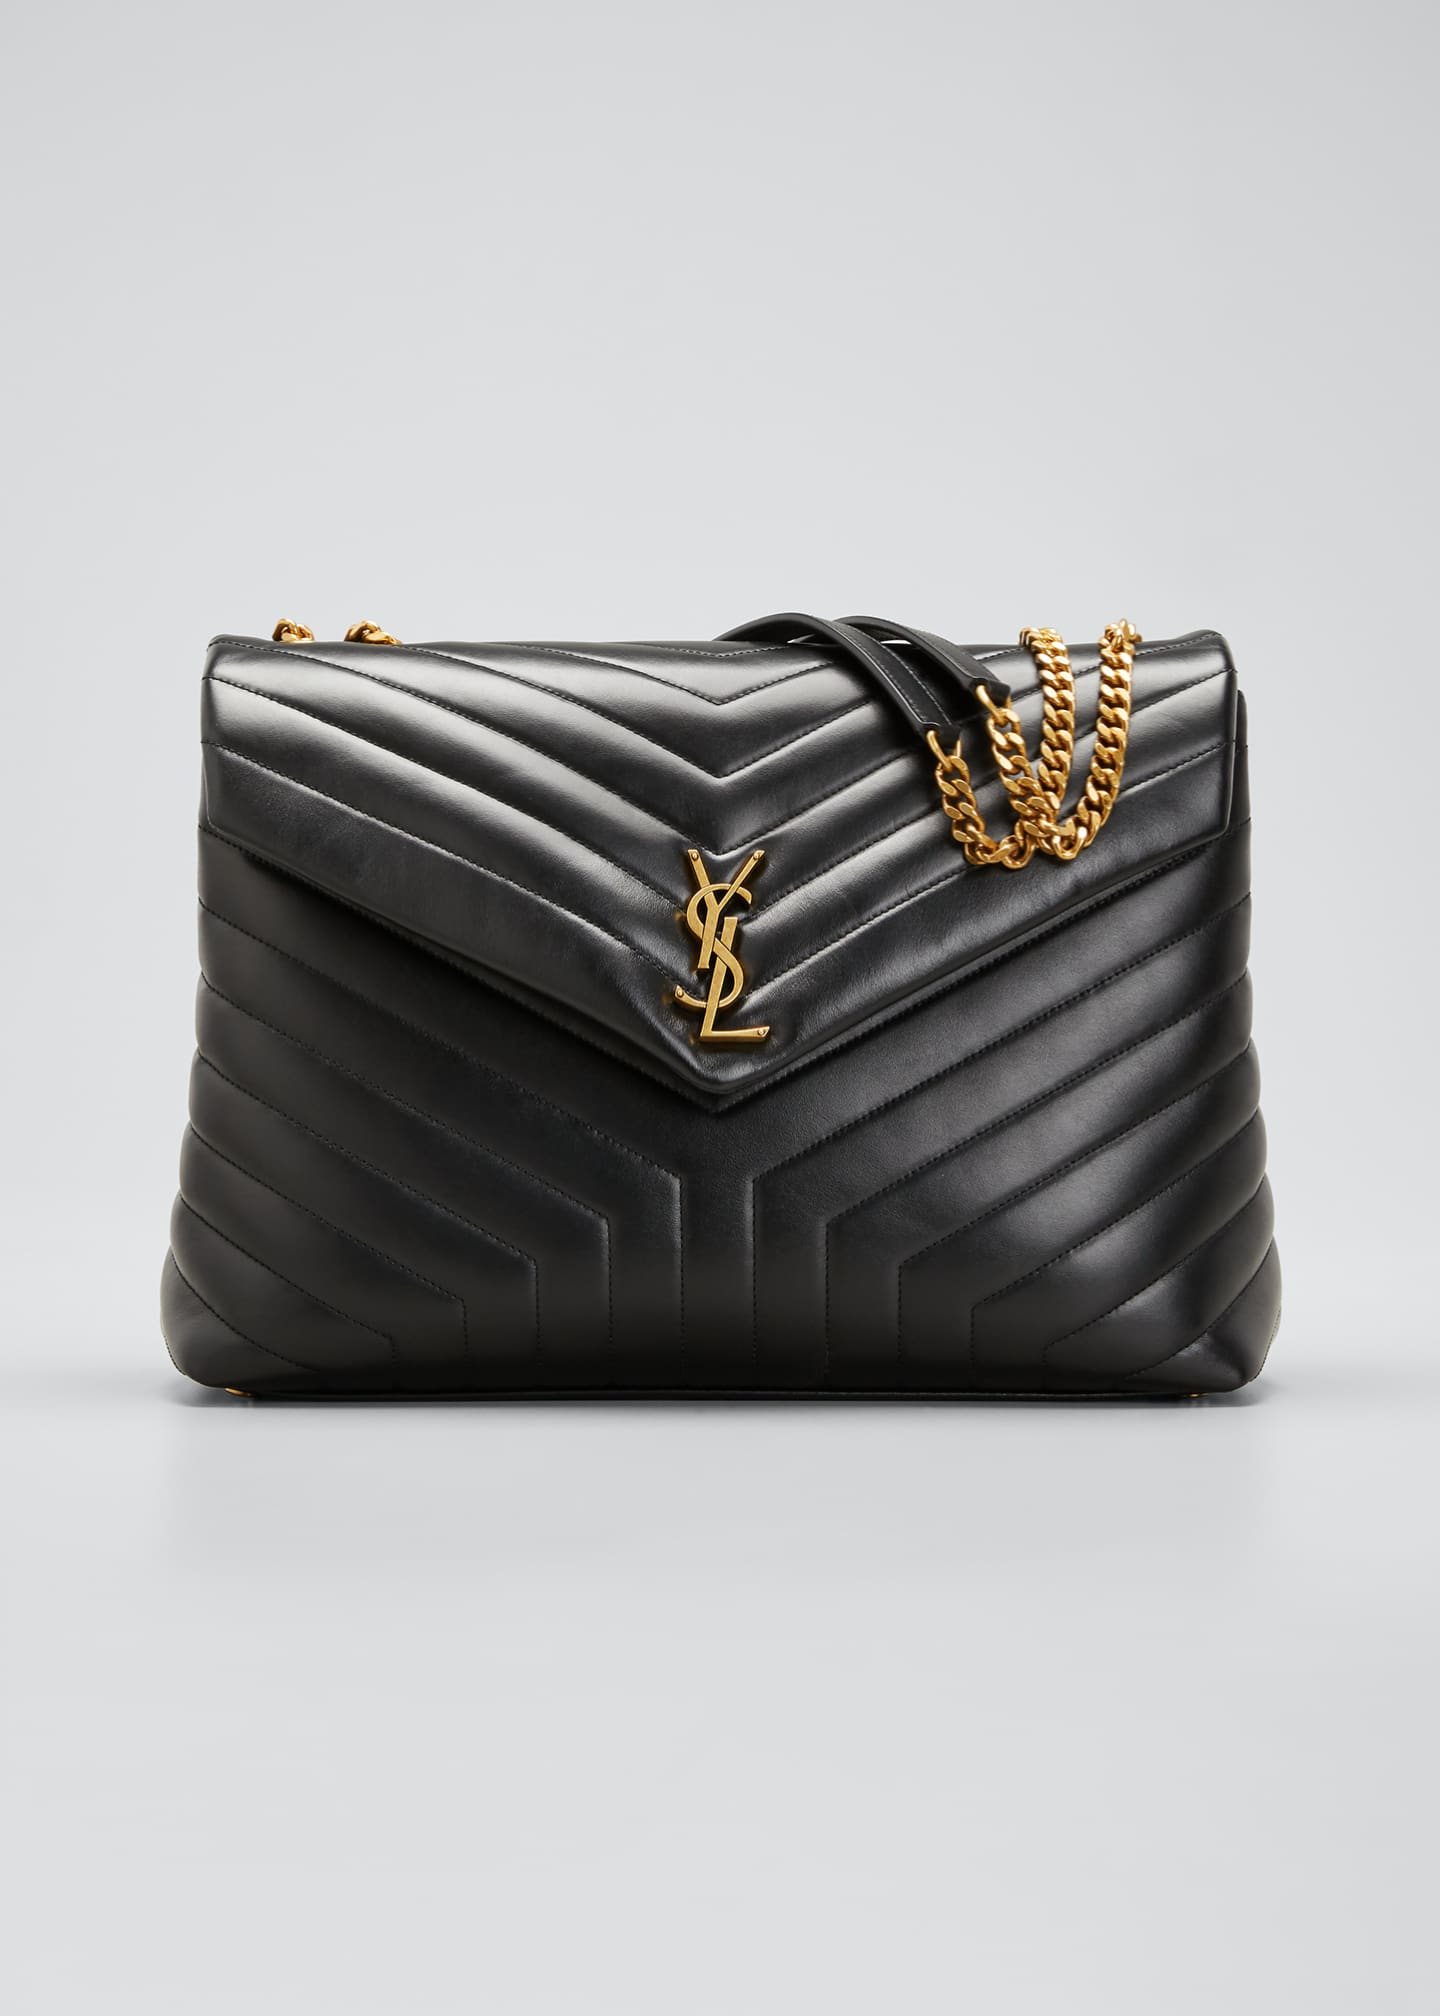 Leather Ysl Loulou Ysl Bag Loulou Quilted Loulou Quilted Quilted Leather Bag 34j5ARL